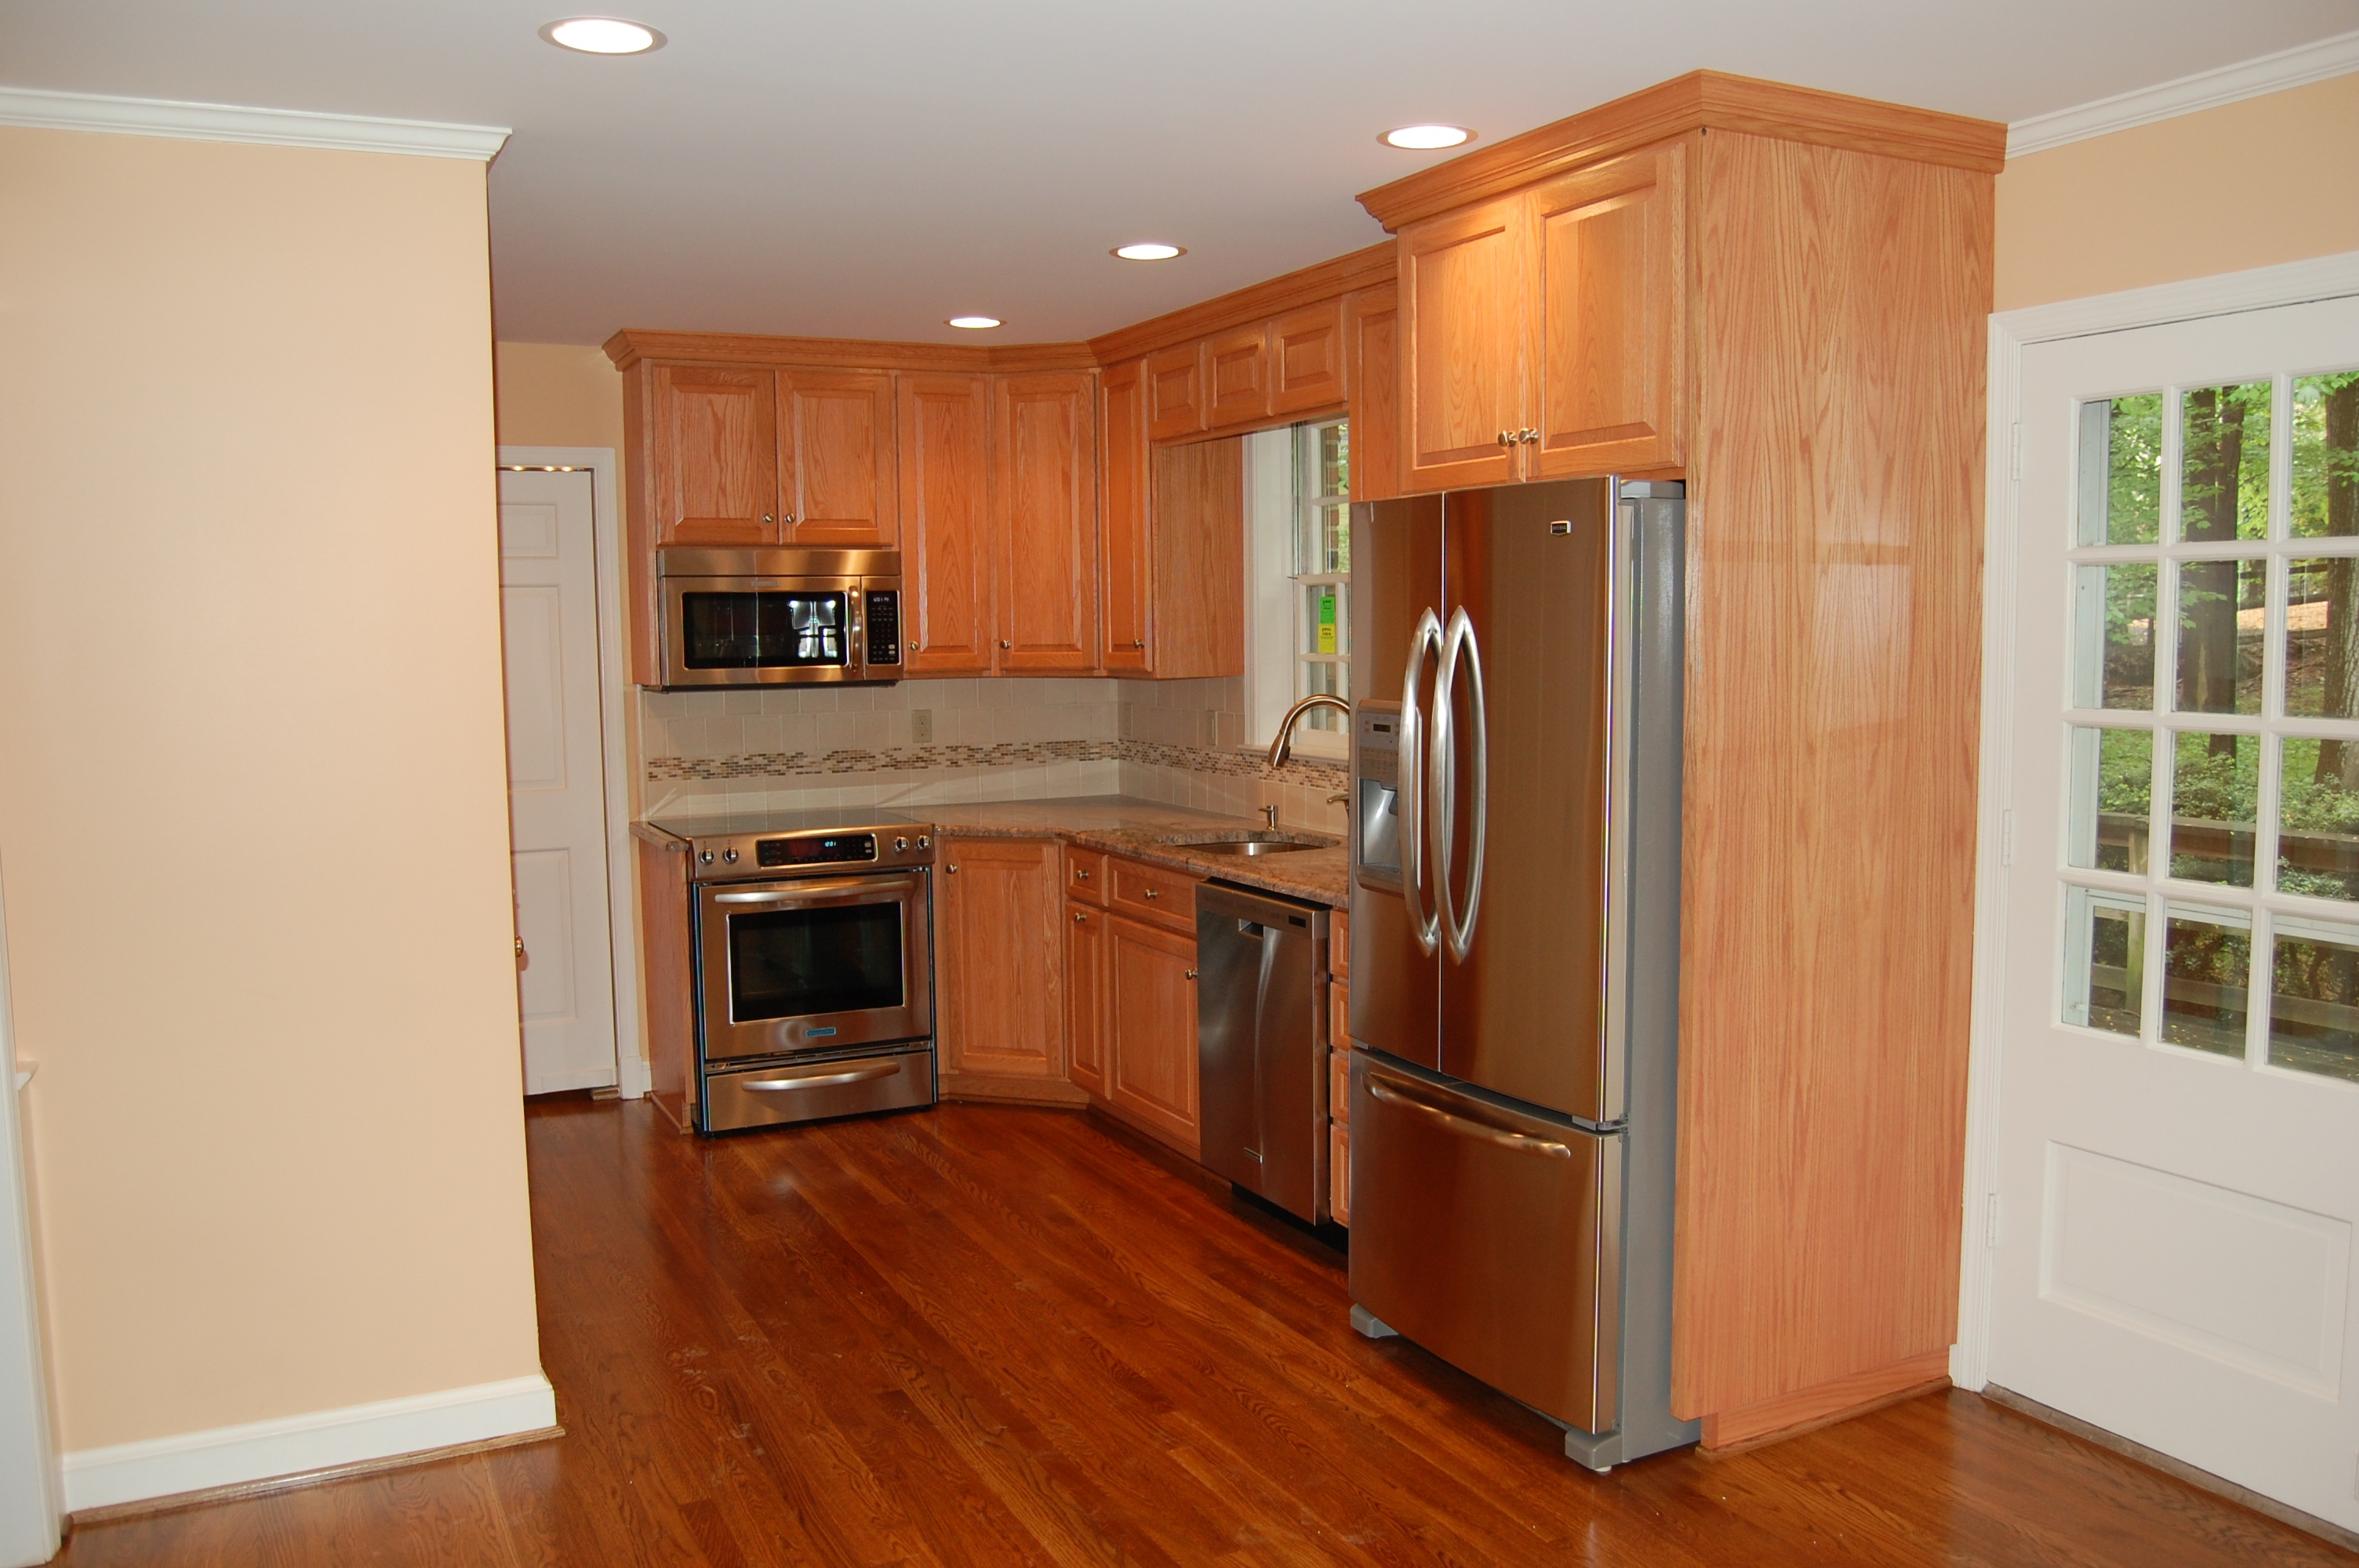 kitchen remodel after A